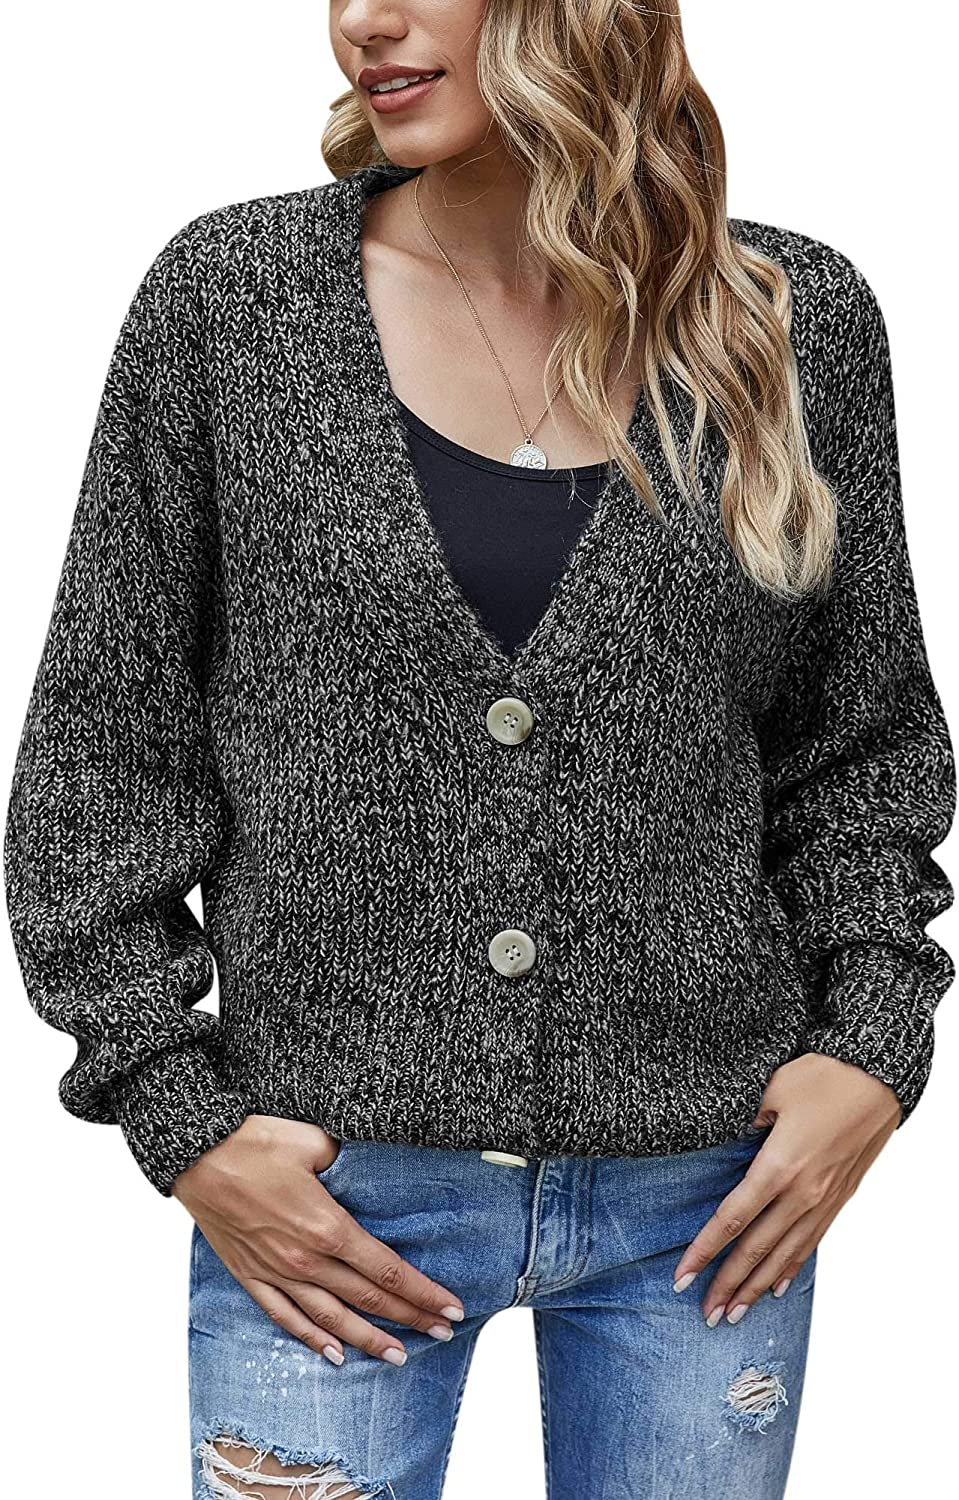 Women's V Neck Button Down Cardigan Sweaters Lantern Long Sleeve Casual Loose Cable Knit Cropped Cardigan Coats